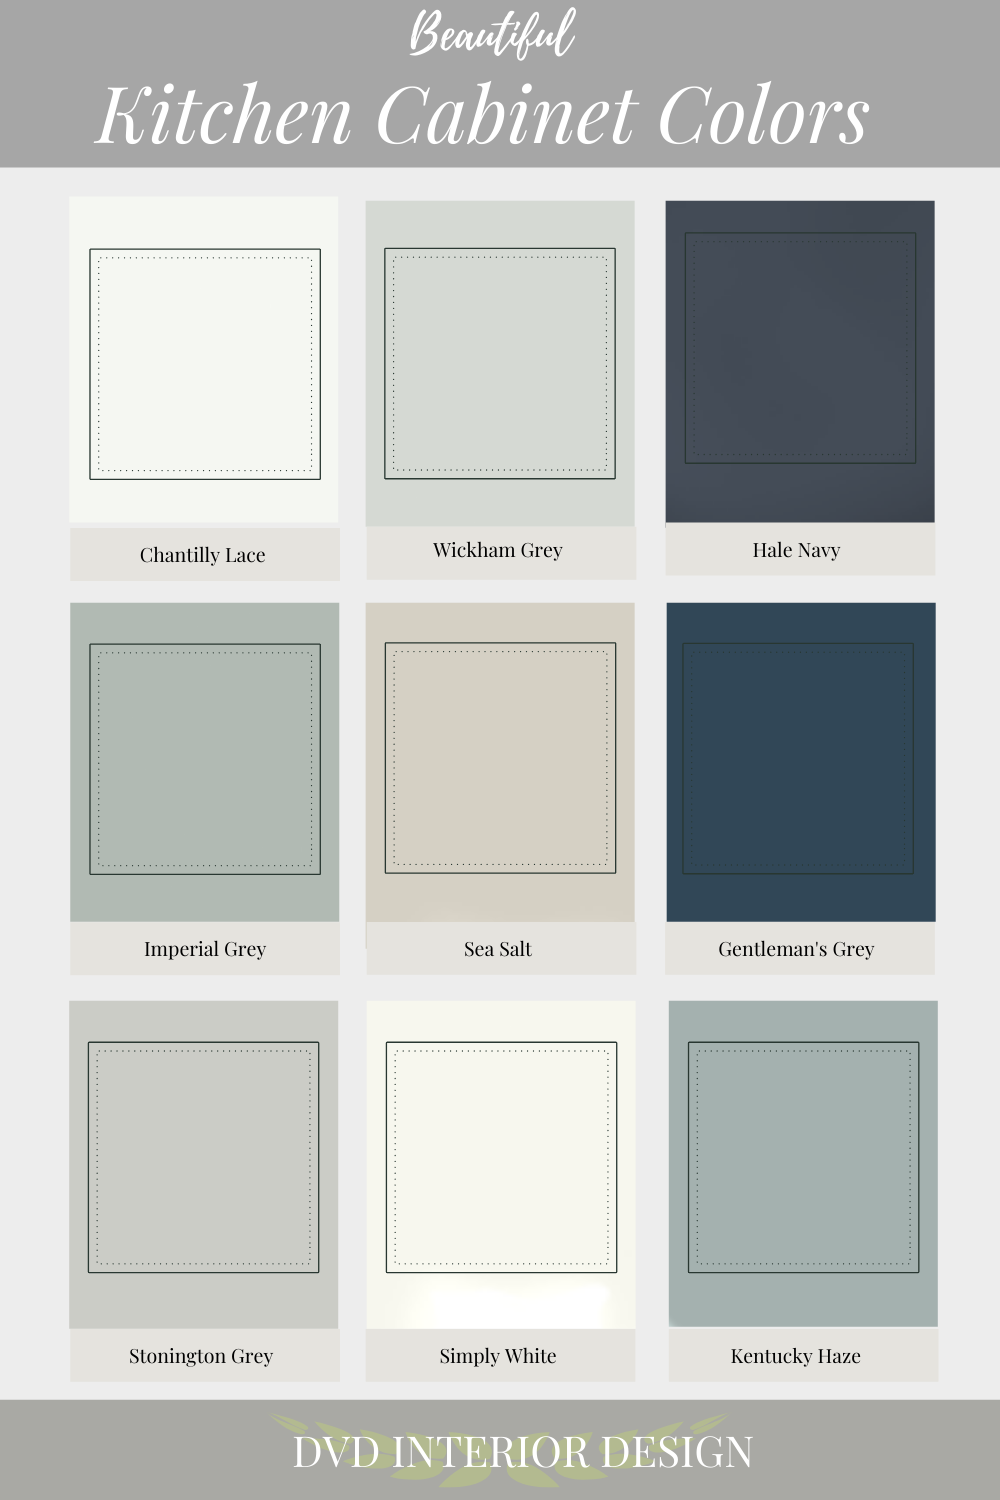 Our No Fail Paint Colors For Kitchen Cabinets That You Ll Love Dvd Interior Design Interior Design Custom Cabinetry Dvd Interior Design Llc Is A Greenwich Ct Based Interior Design Firm Luxury